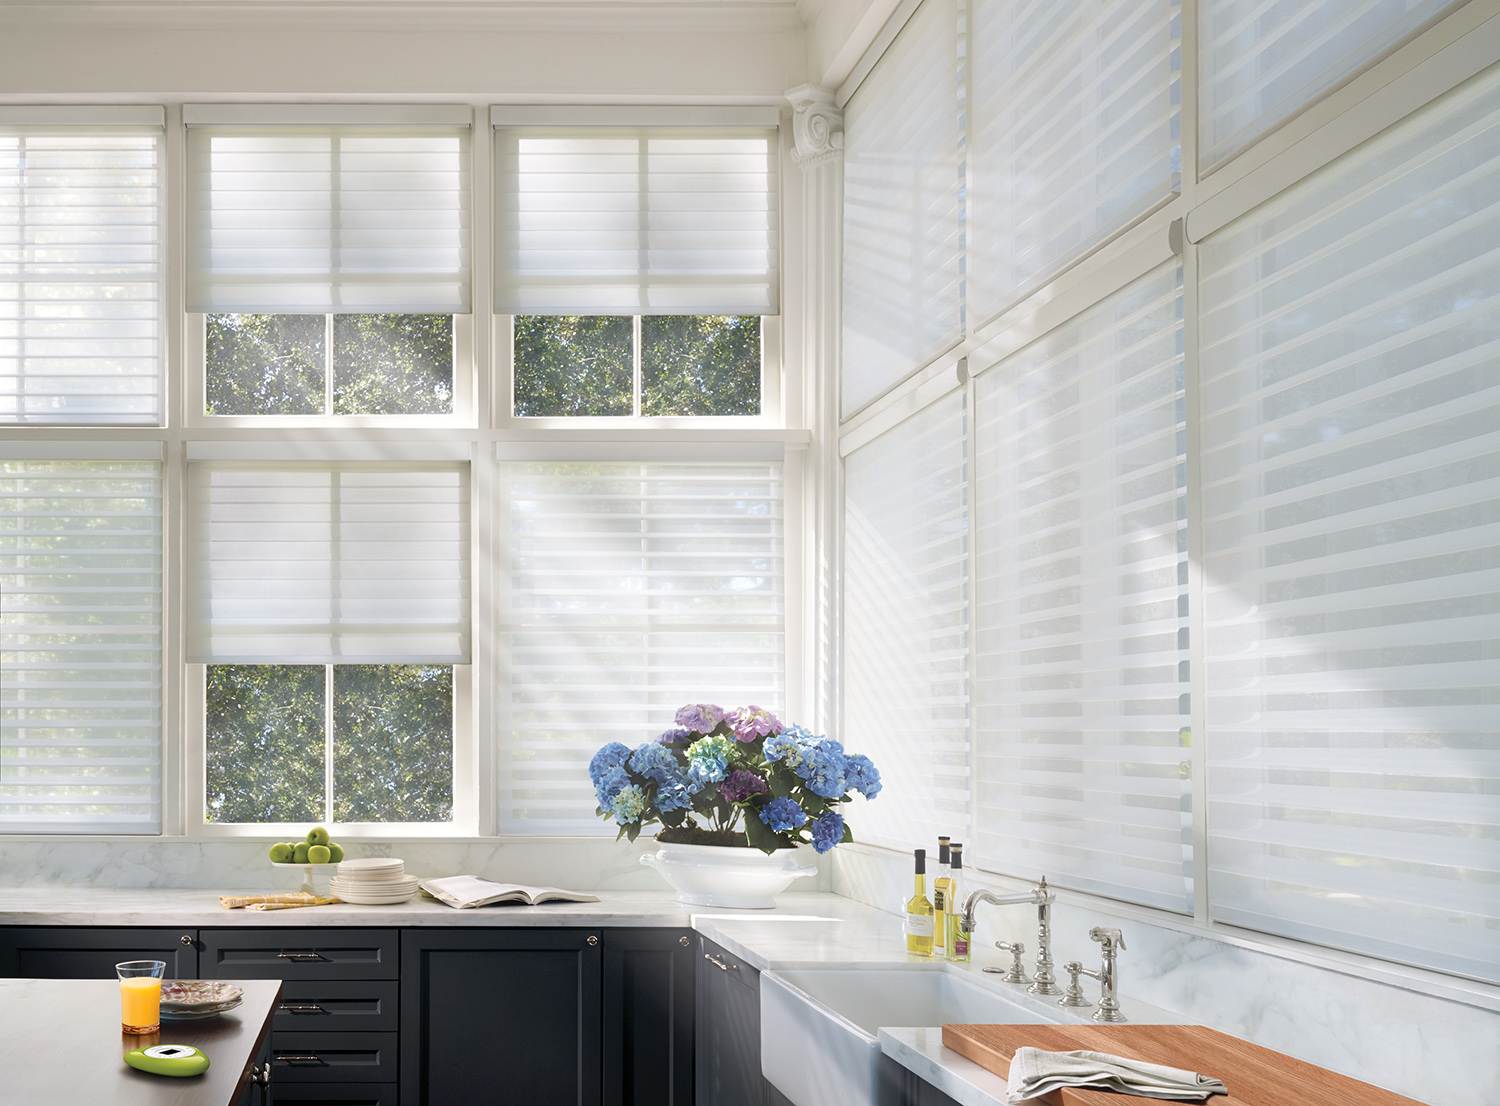 Hunter Douglas Motorized Shades are the epitome of high-tech window coverings.